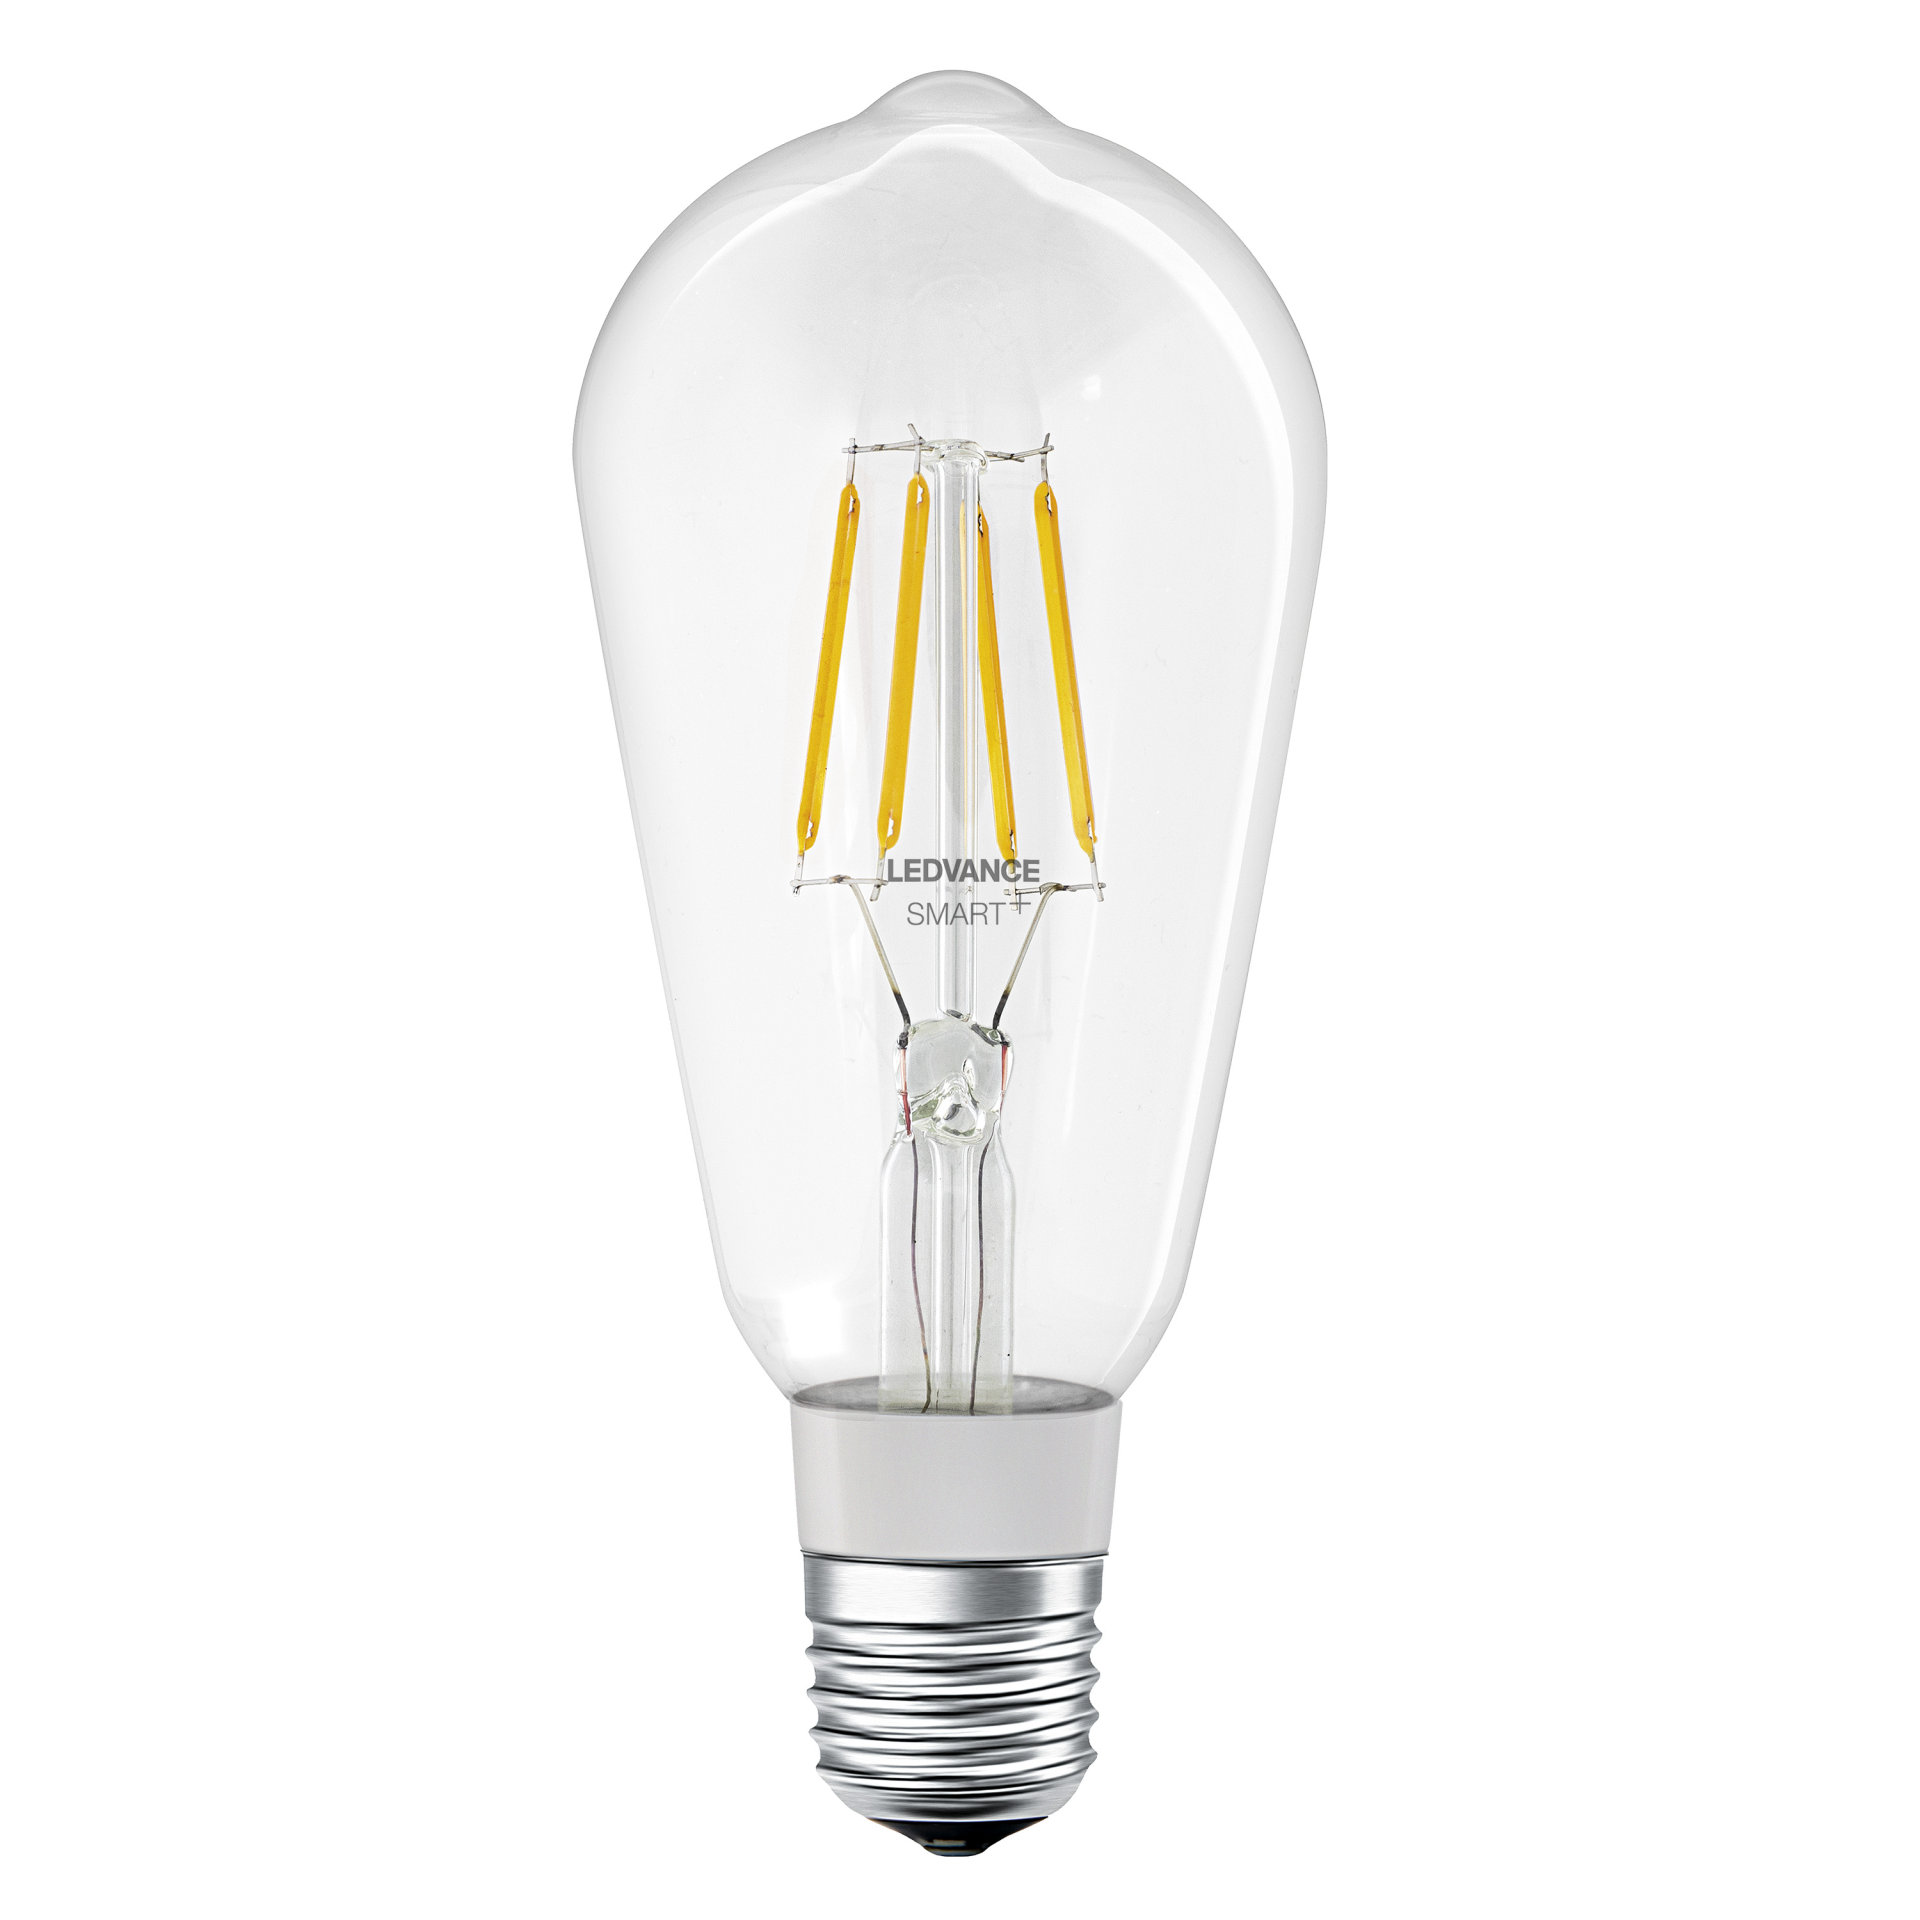 SMART+ Filament Edison Dimmable